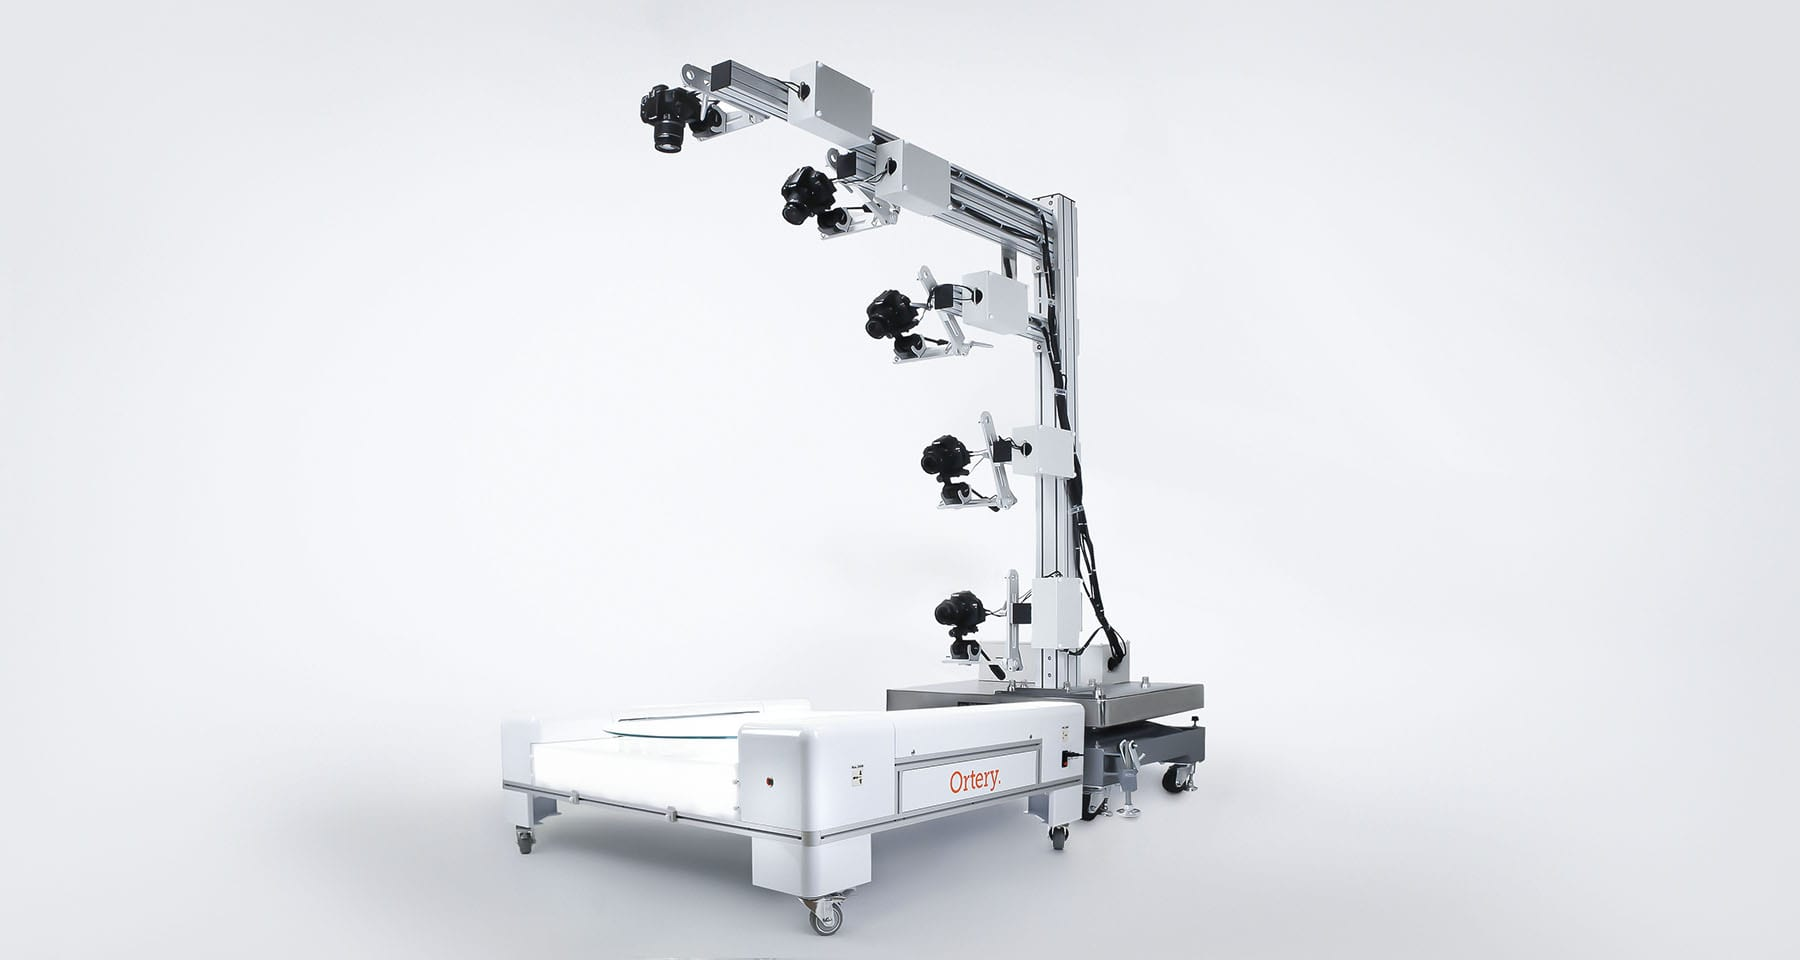 Add an Ortery 360 turntable to our 3D MultiArm system to create and automate 3D product photography